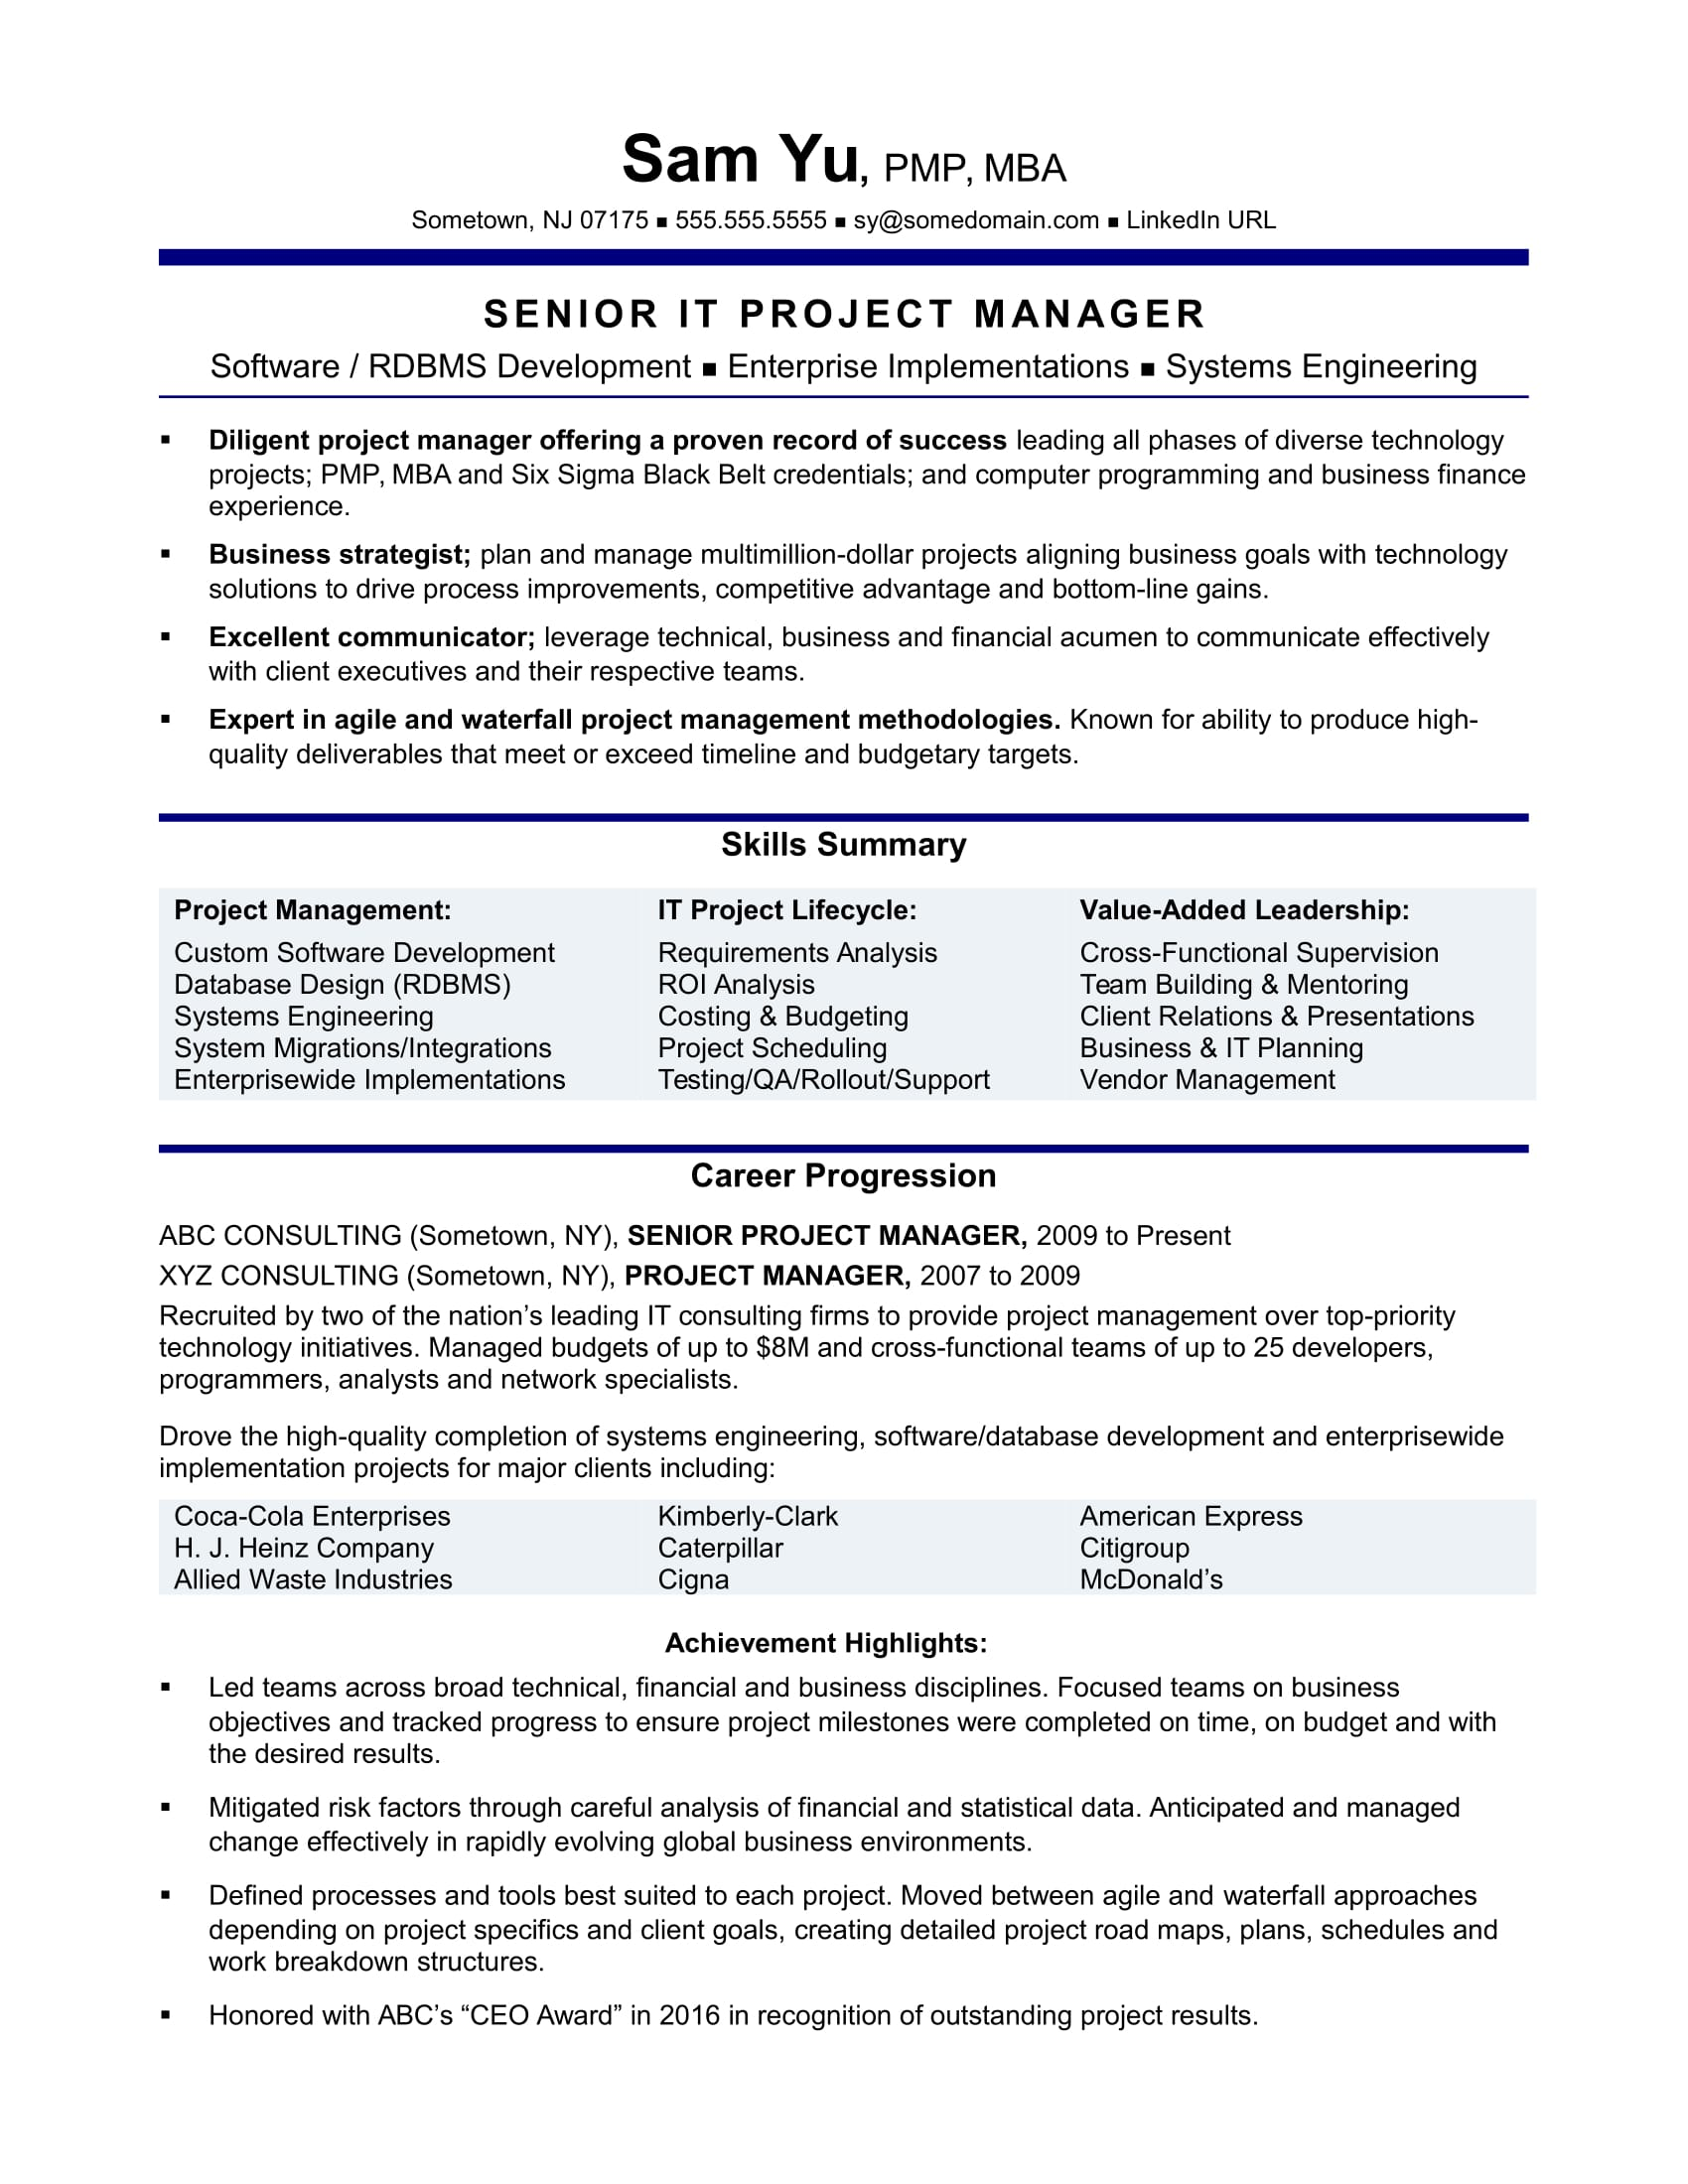 Experienced IT Project Manager Resume Sample  Monster Resume Builder